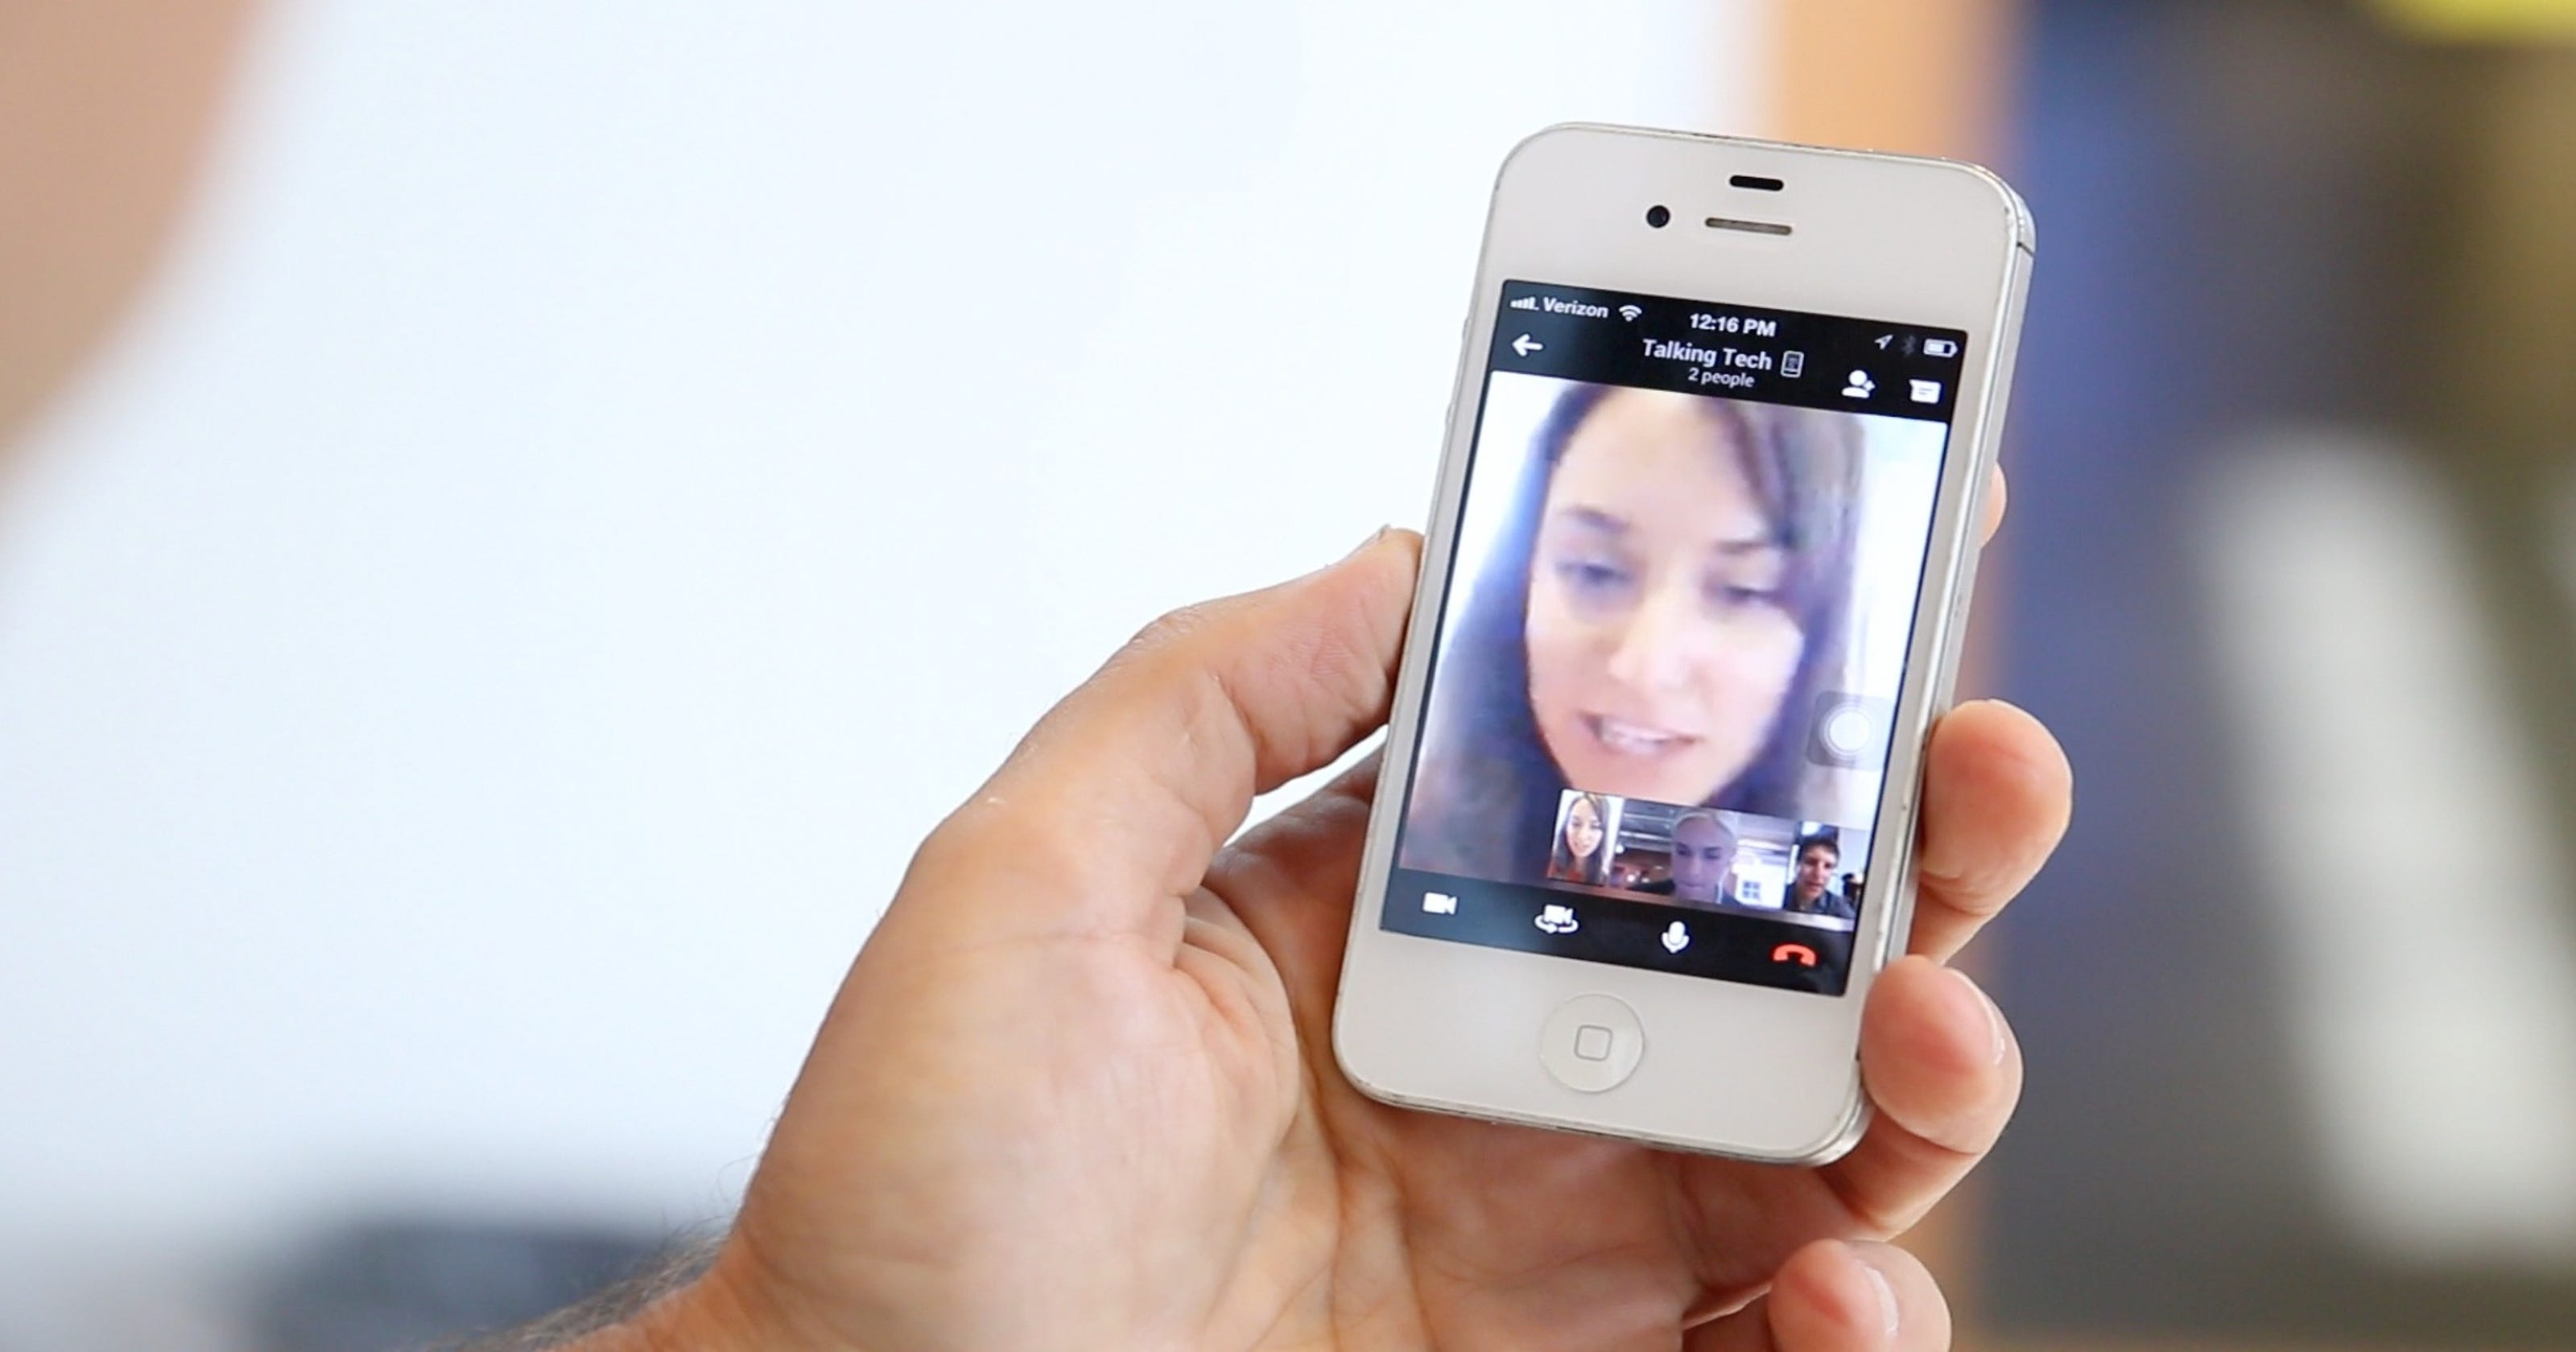 Google + Hangout app fun for group video chats